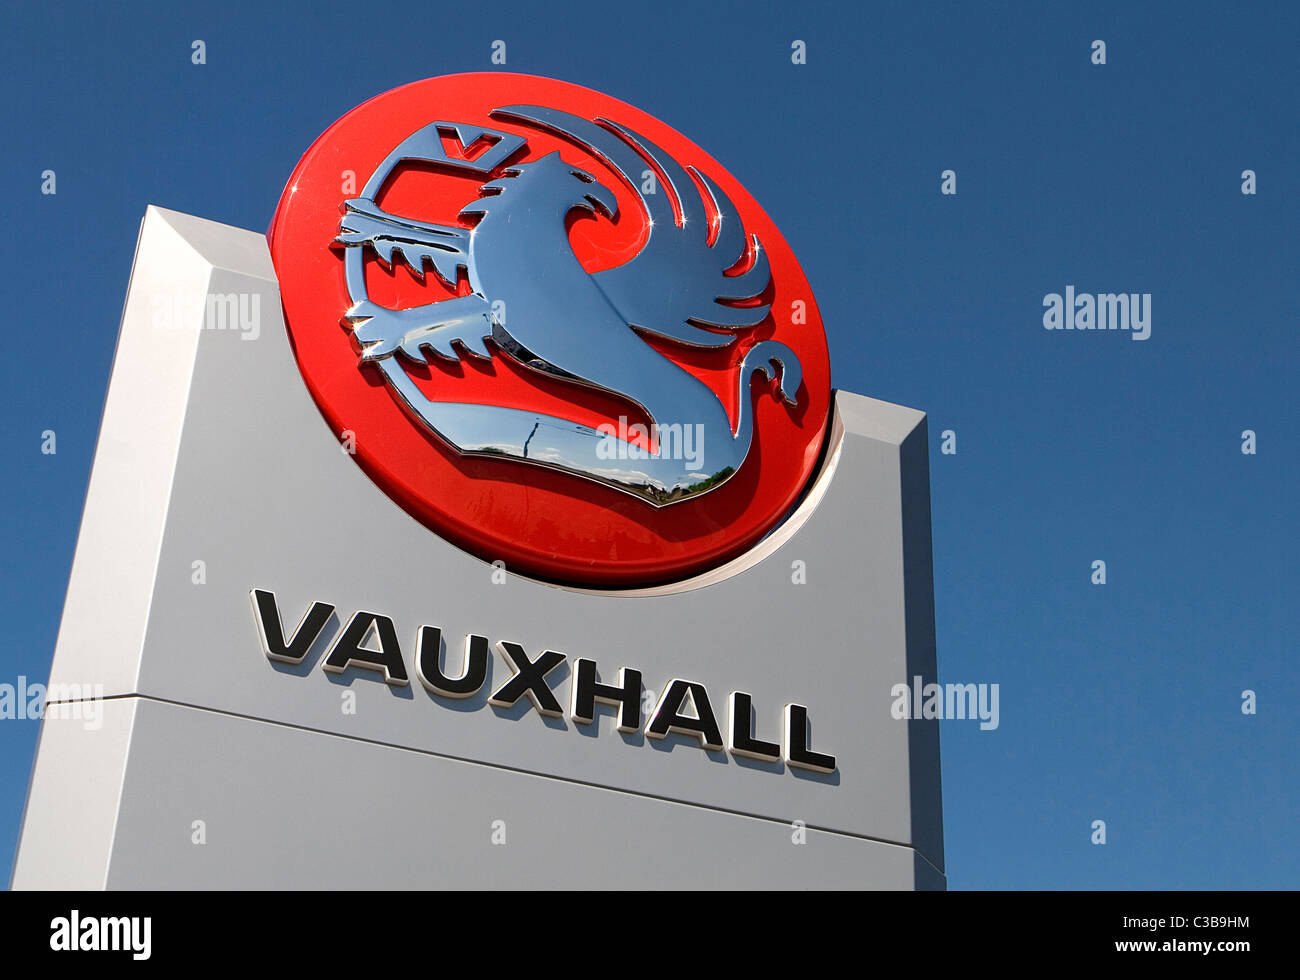 Illustrative image of Vauxhall cars, part of the General Motors group. - Stock Image